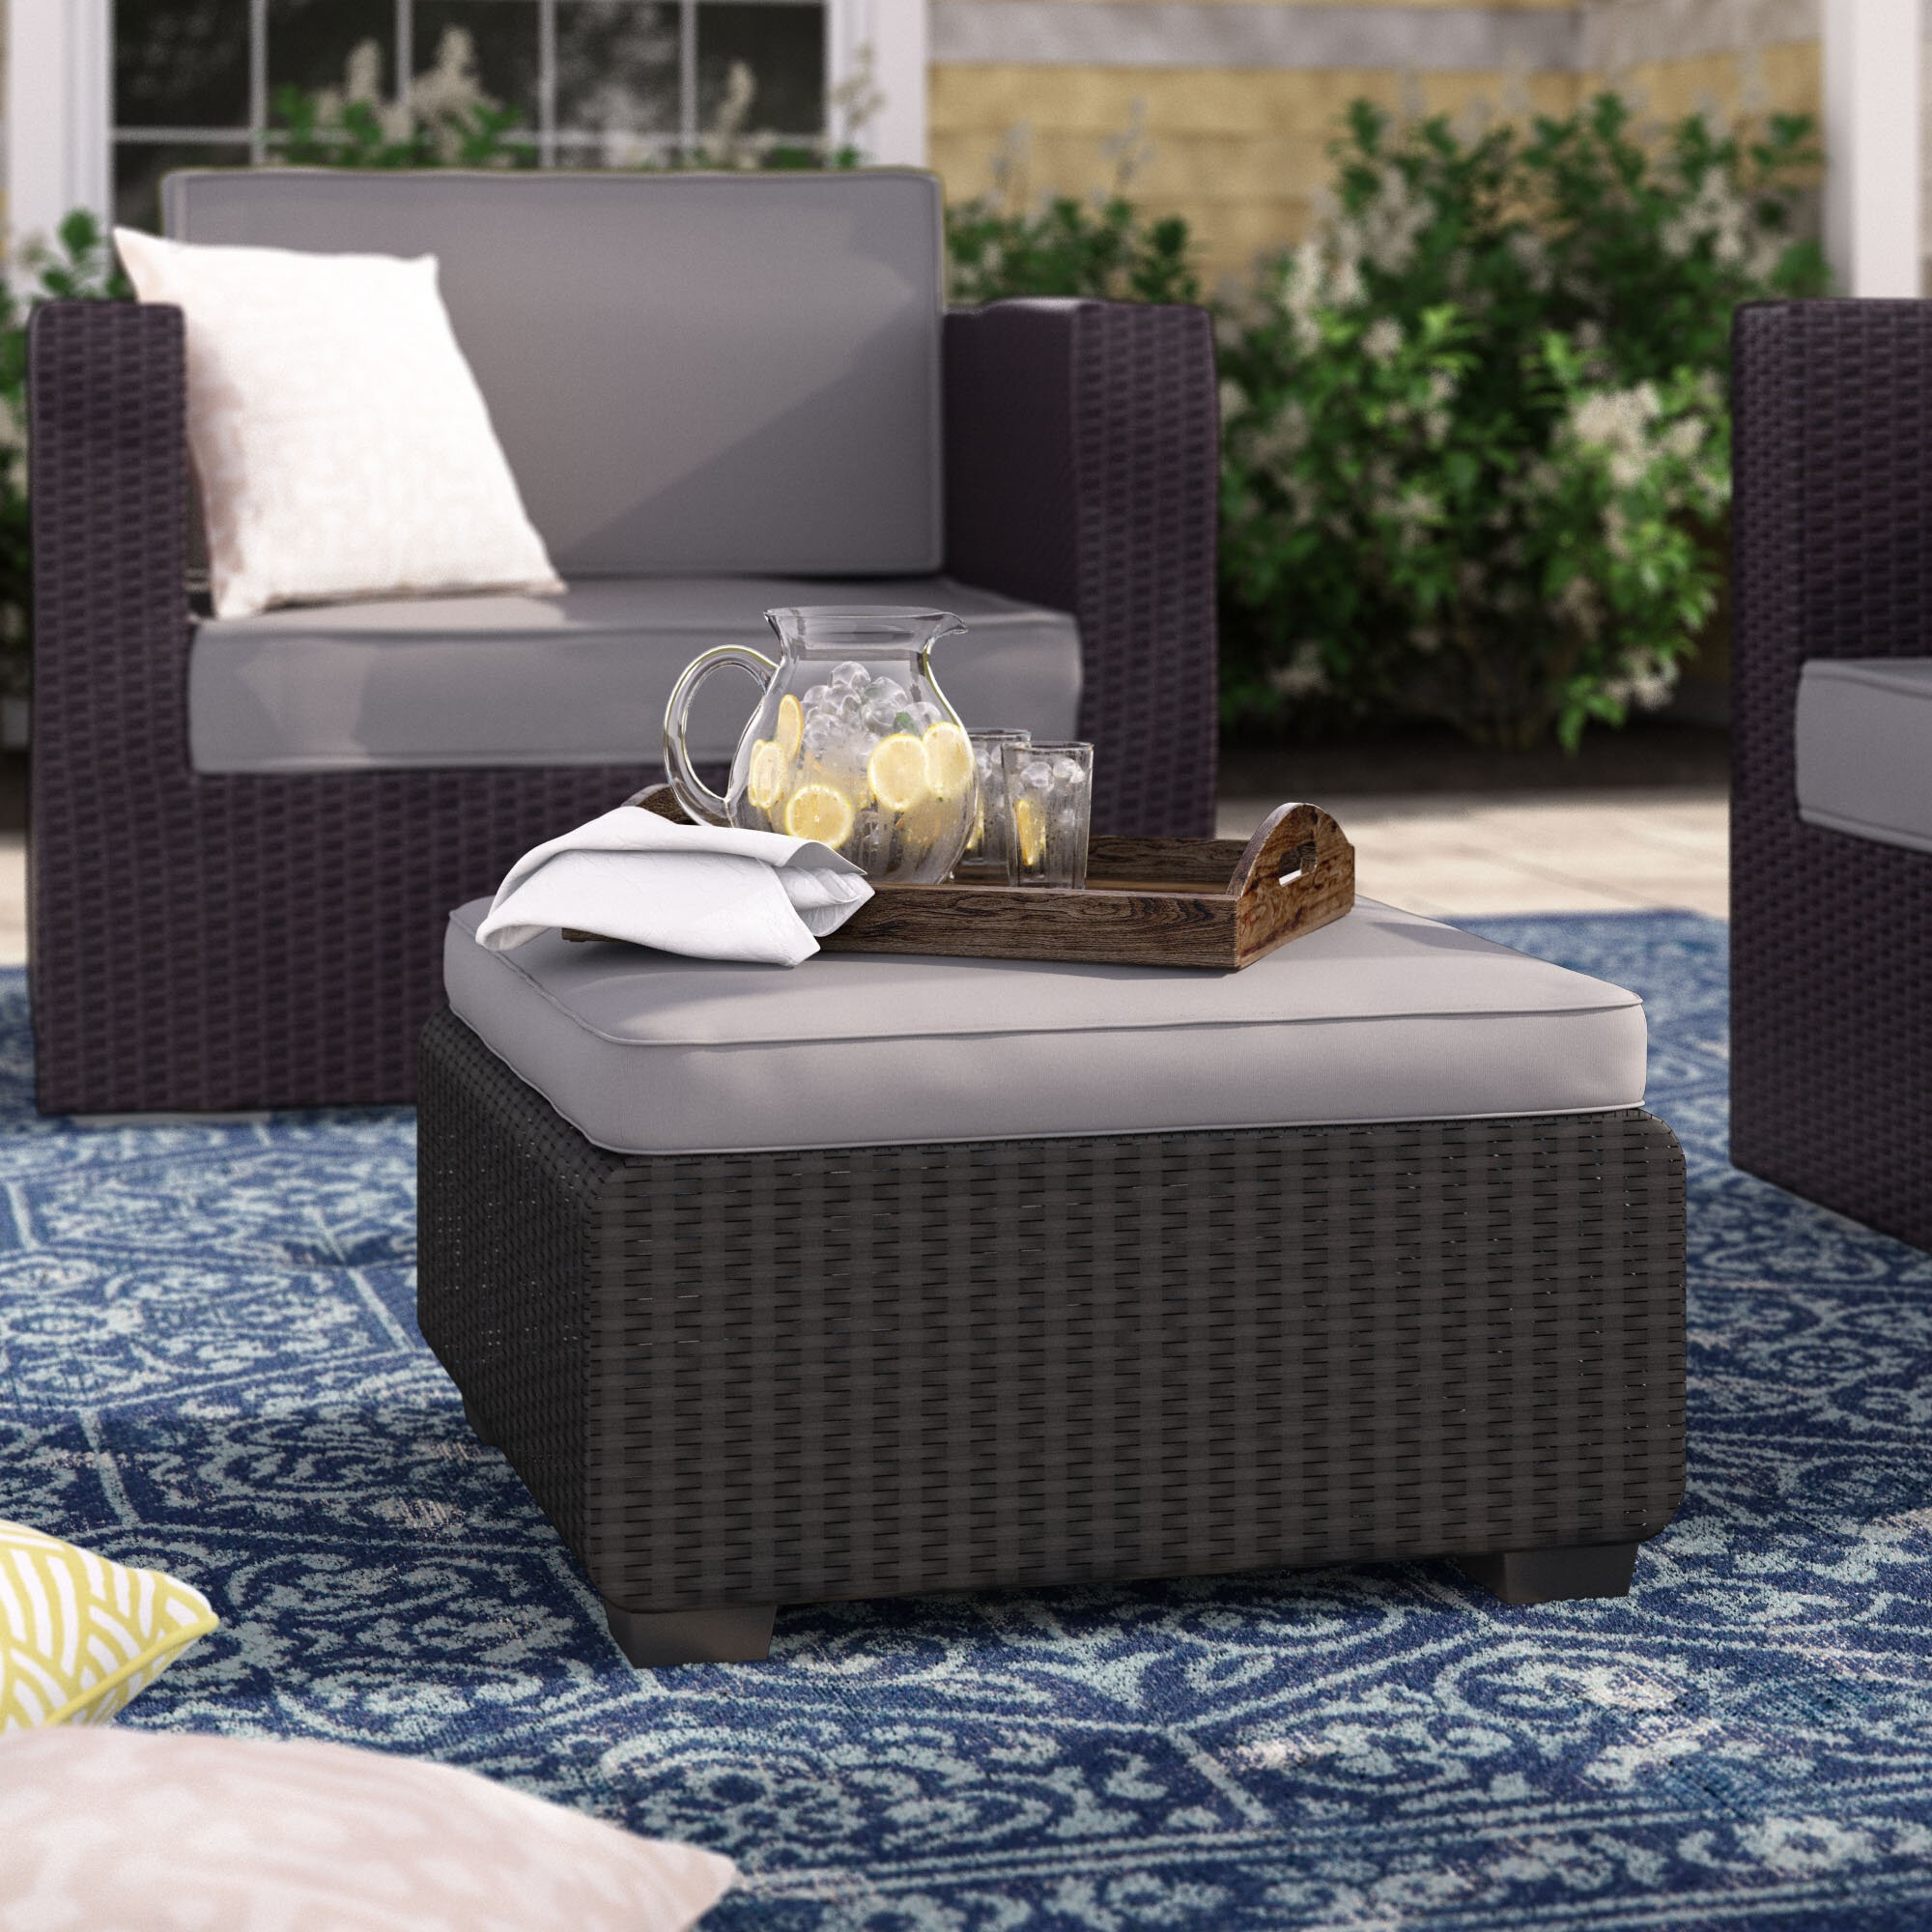 Halloran Outdoor Ottoman with Sunbrella Cushions